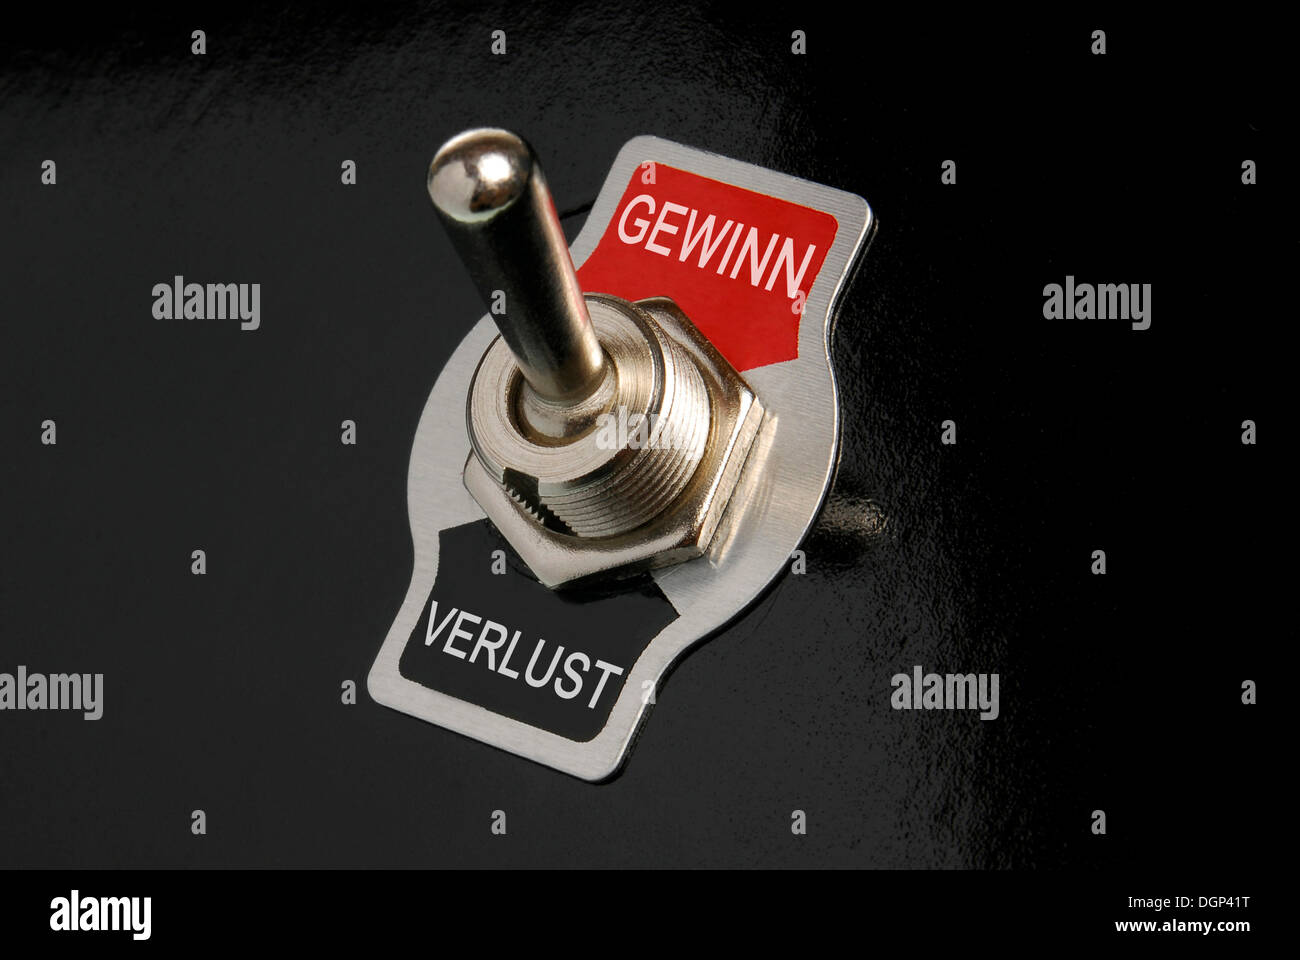 Toggle switch, labelled Gewinn and Verlust, German for win and loss, symbolic image Stock Photo